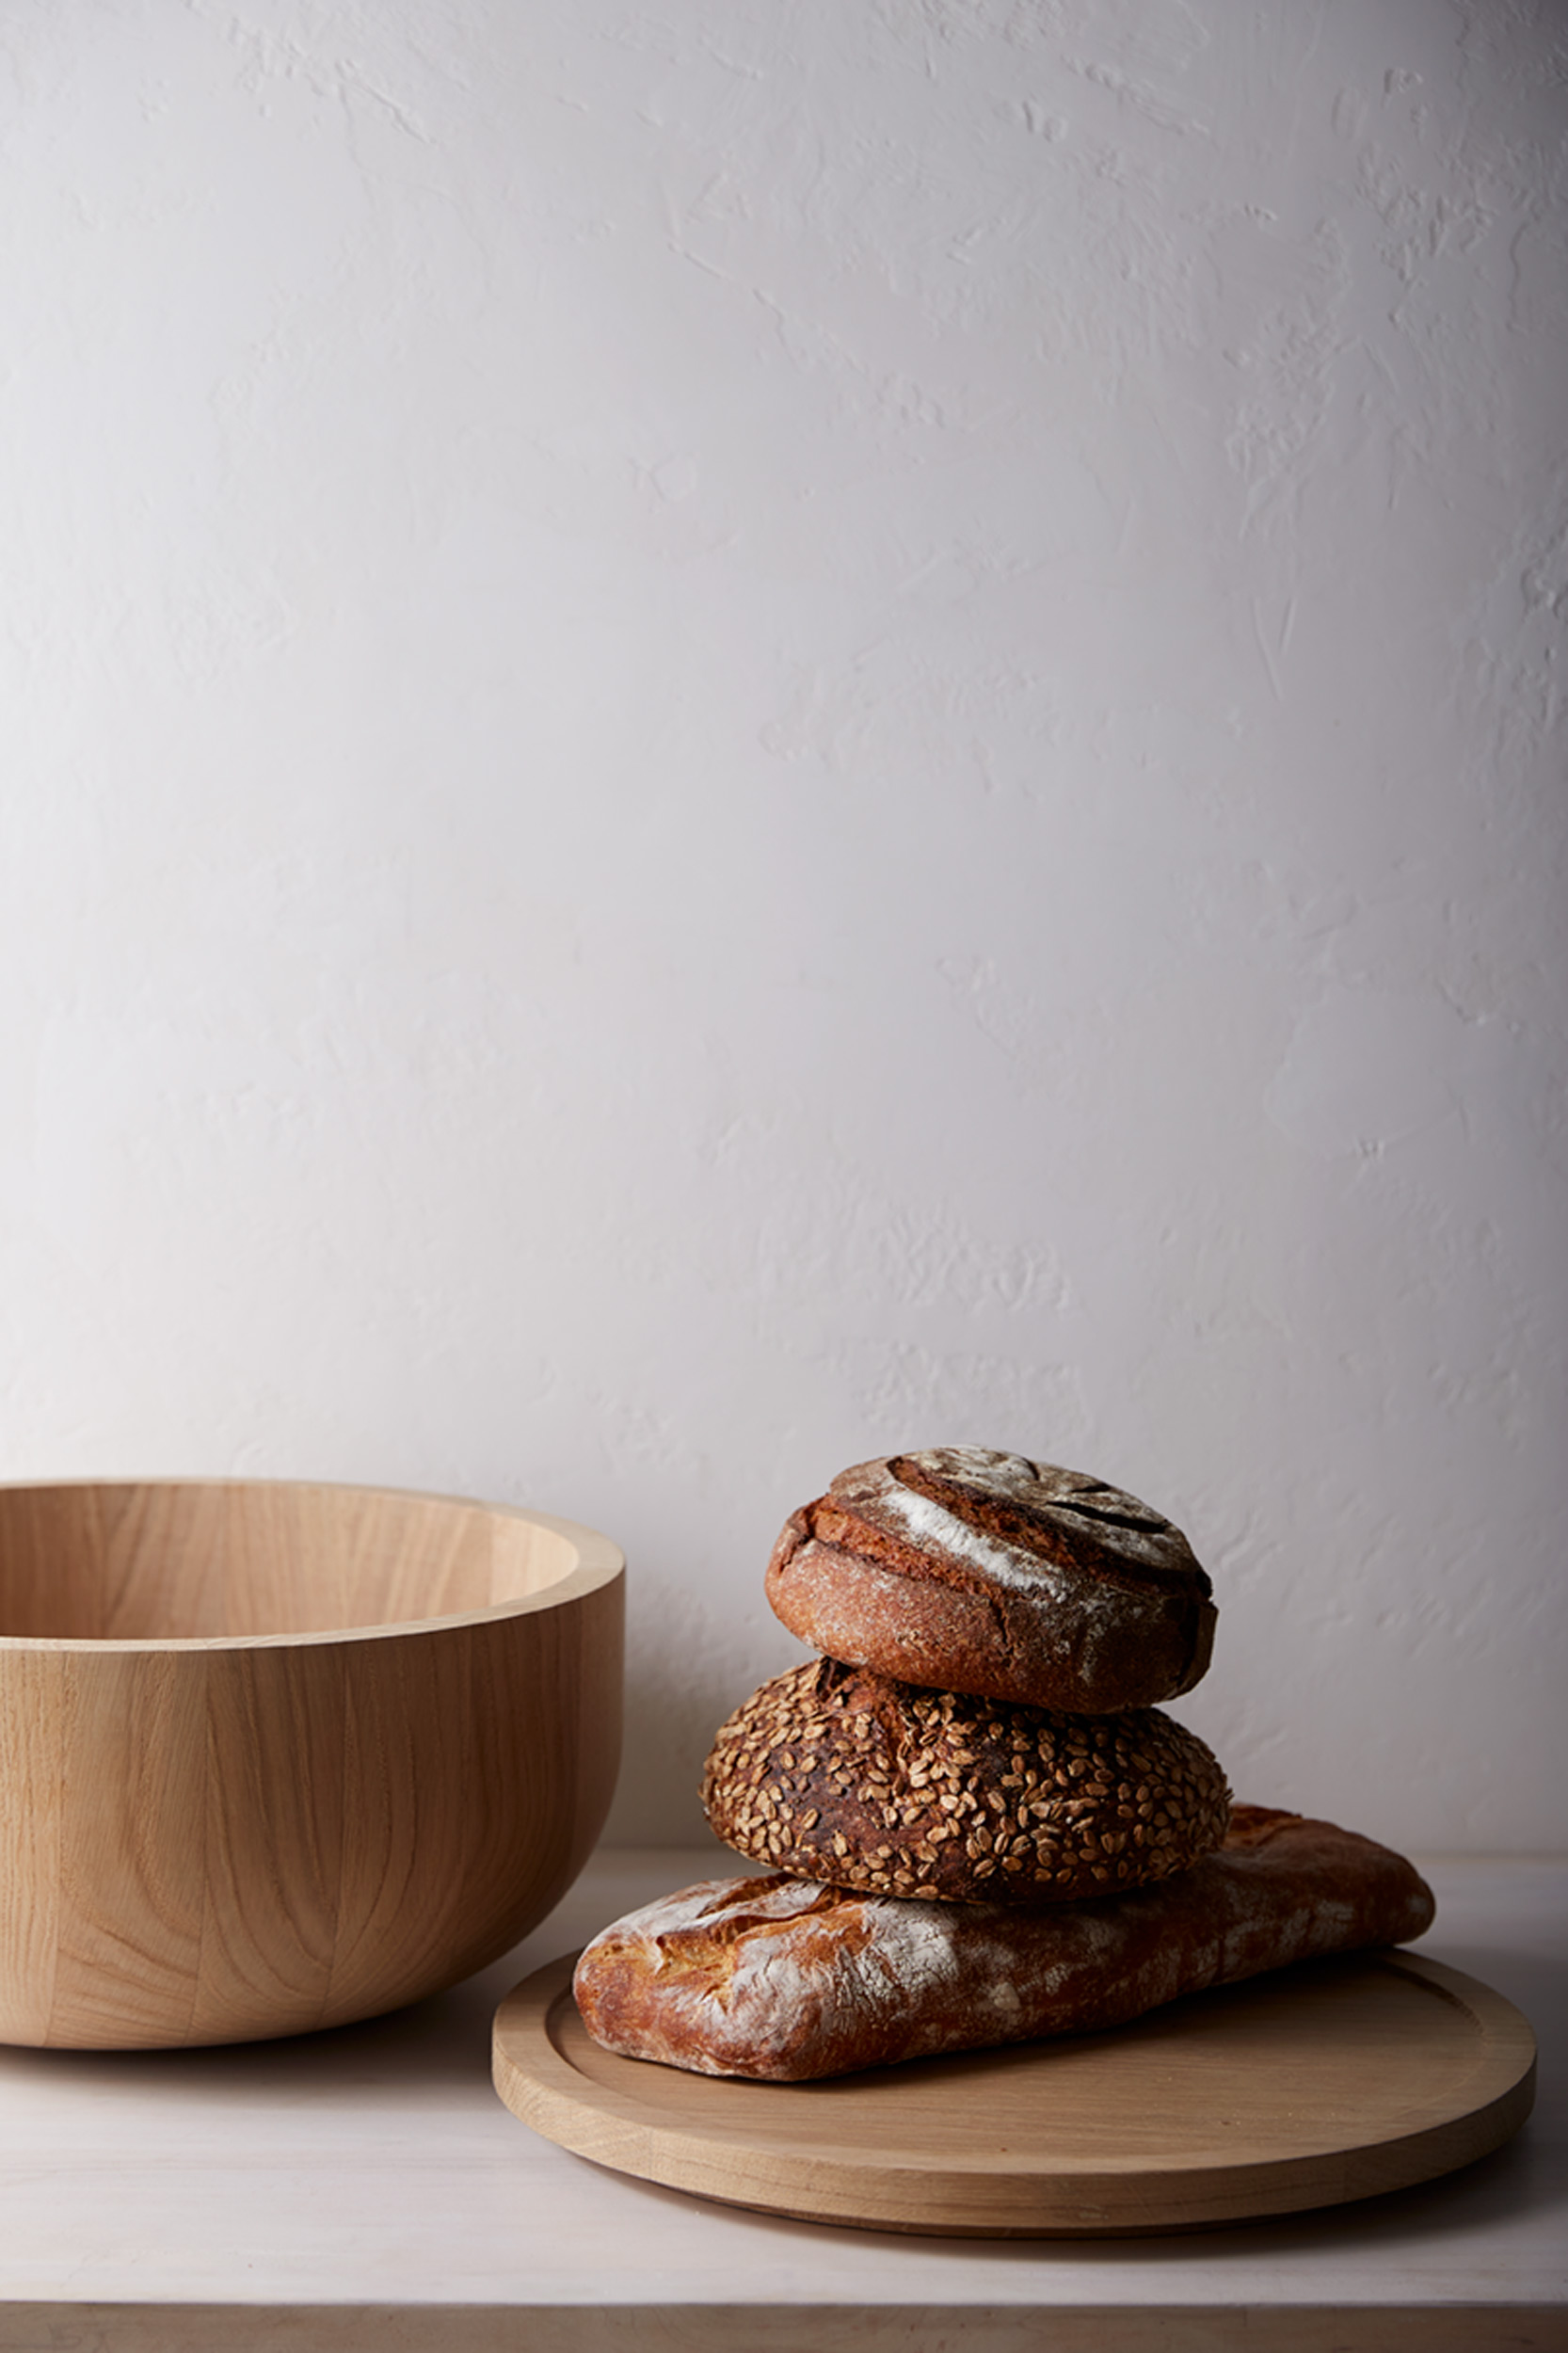 Katie Newburn | San Francisco Bay Area Food and Lifestyle Photographer | Bread